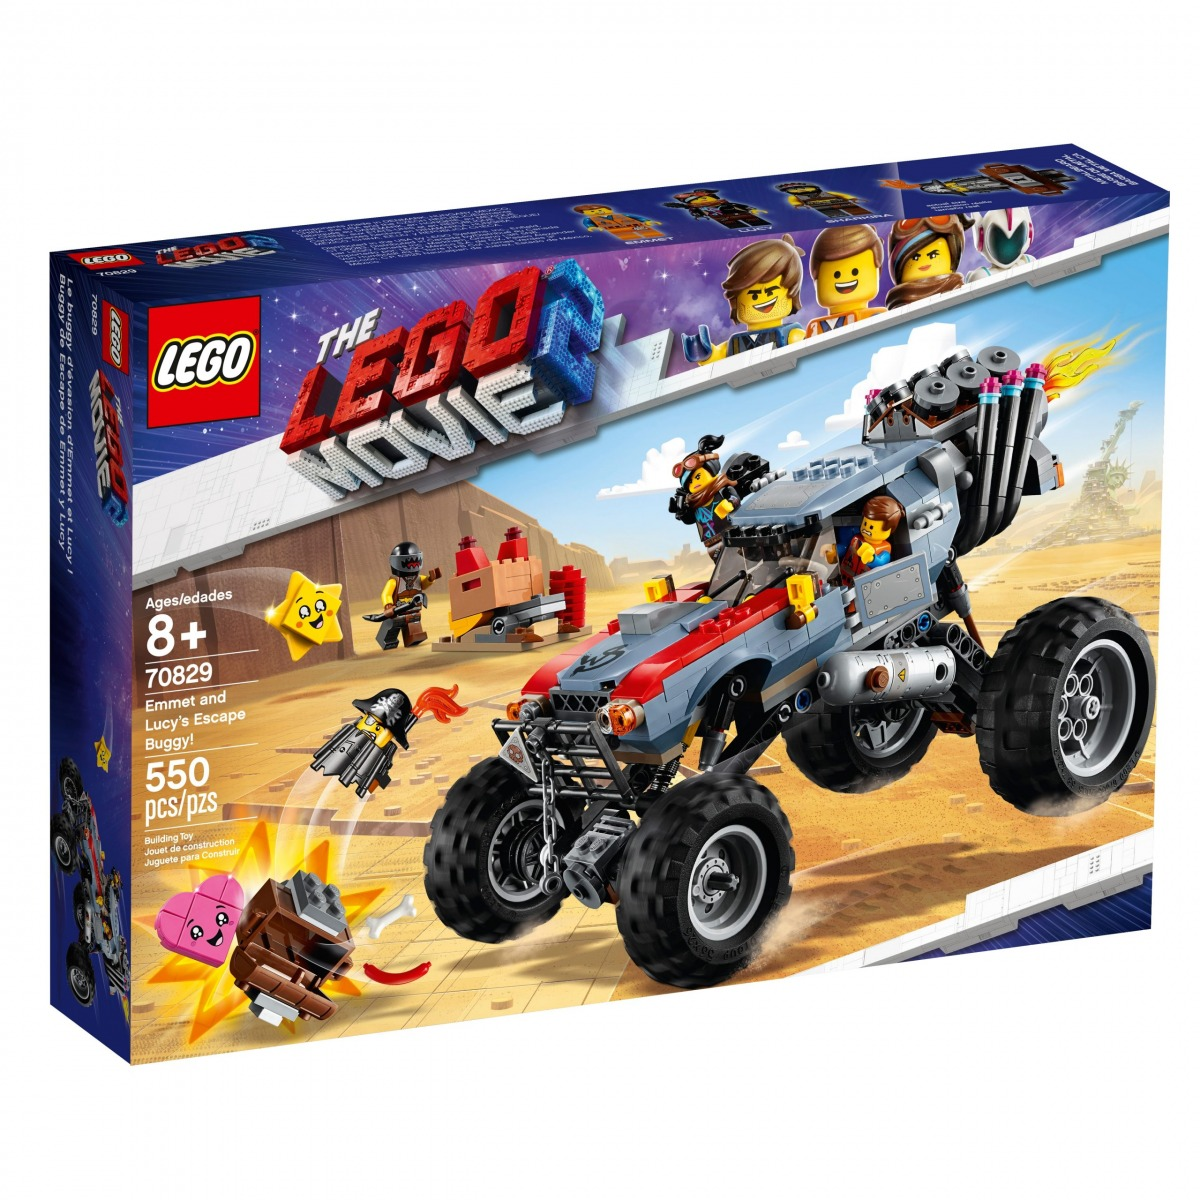 lego 70829 emmet and lucys escape buggy scaled